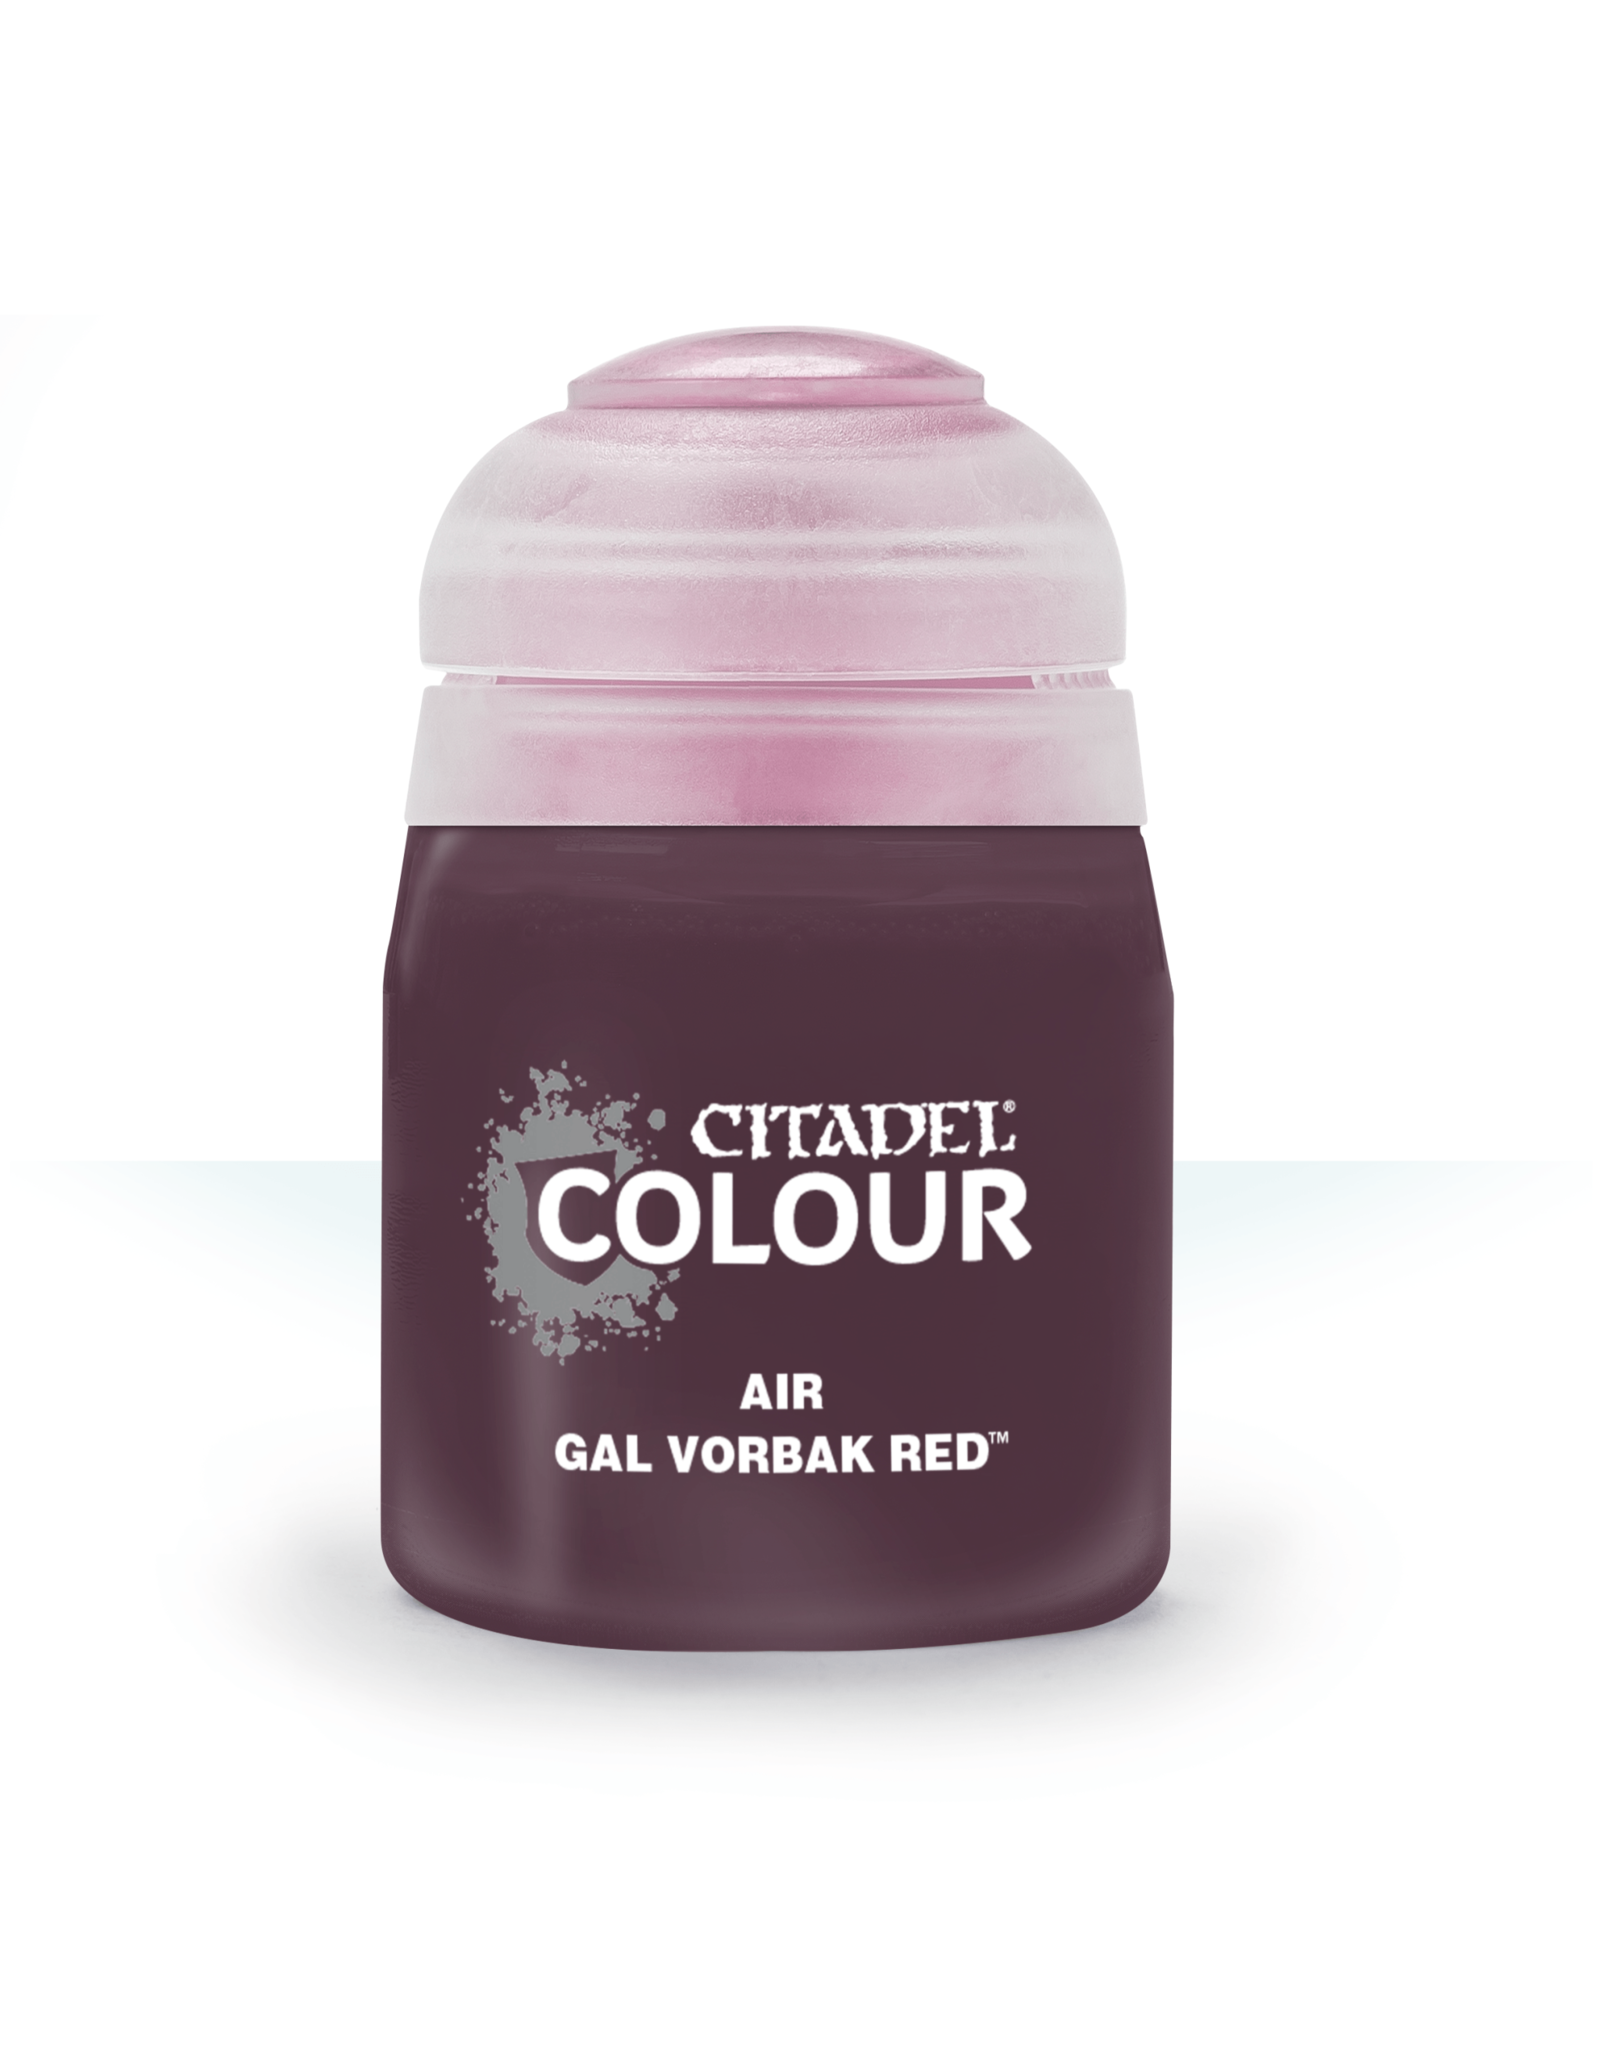 Citadel Citadel Paints Air Paint Gal Vorbak Red